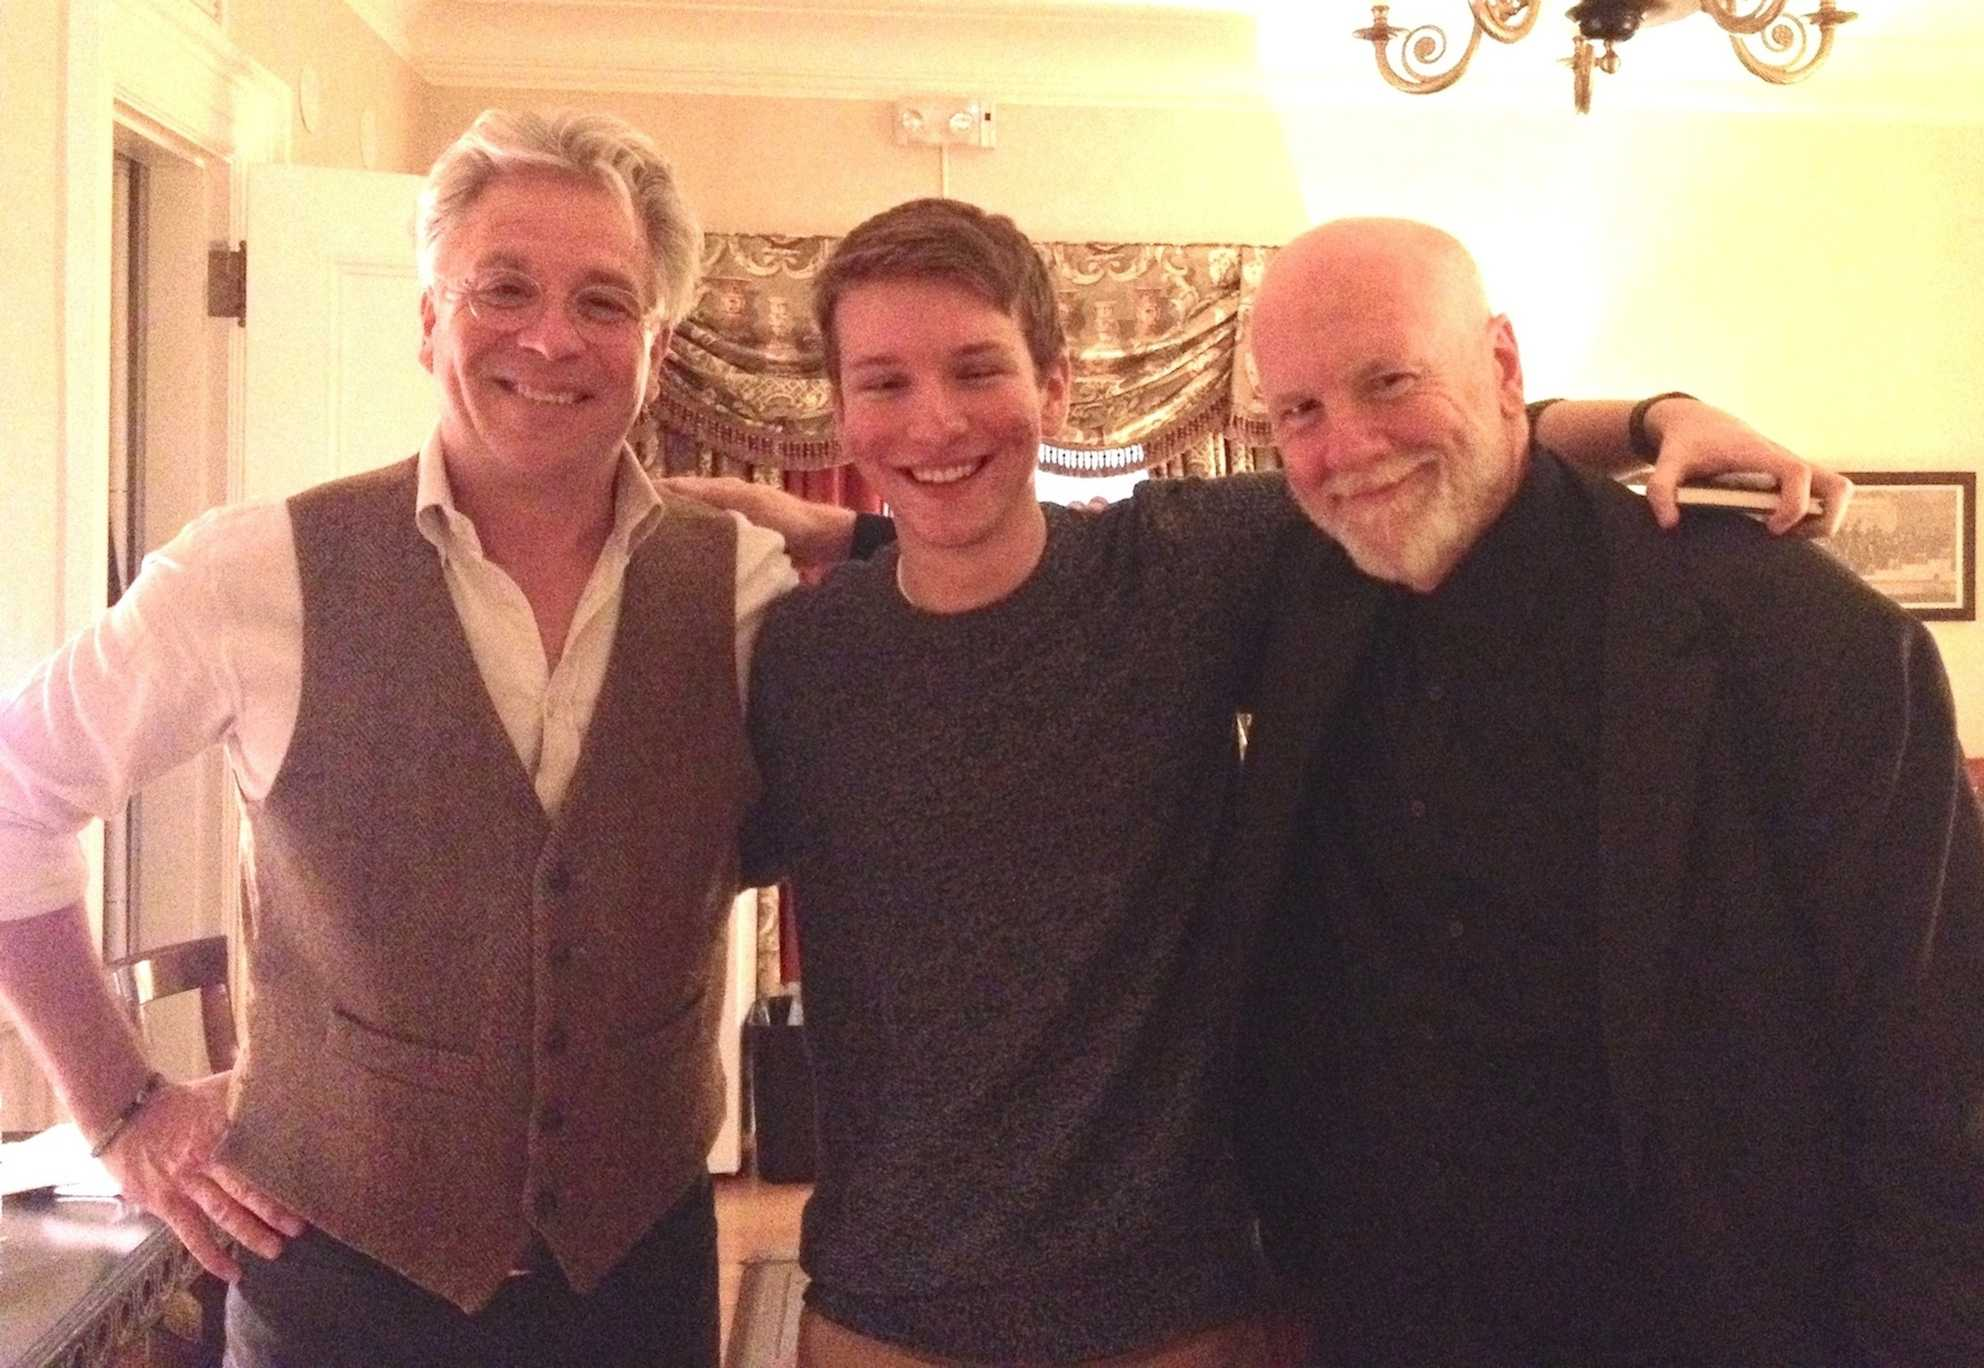 Trumpeter Håkan Hardenberger (left) and composer Brett Dean (right) with a reporter from the Raider Times at Boston Symphony Orchestra on Nov. 15, 2014.